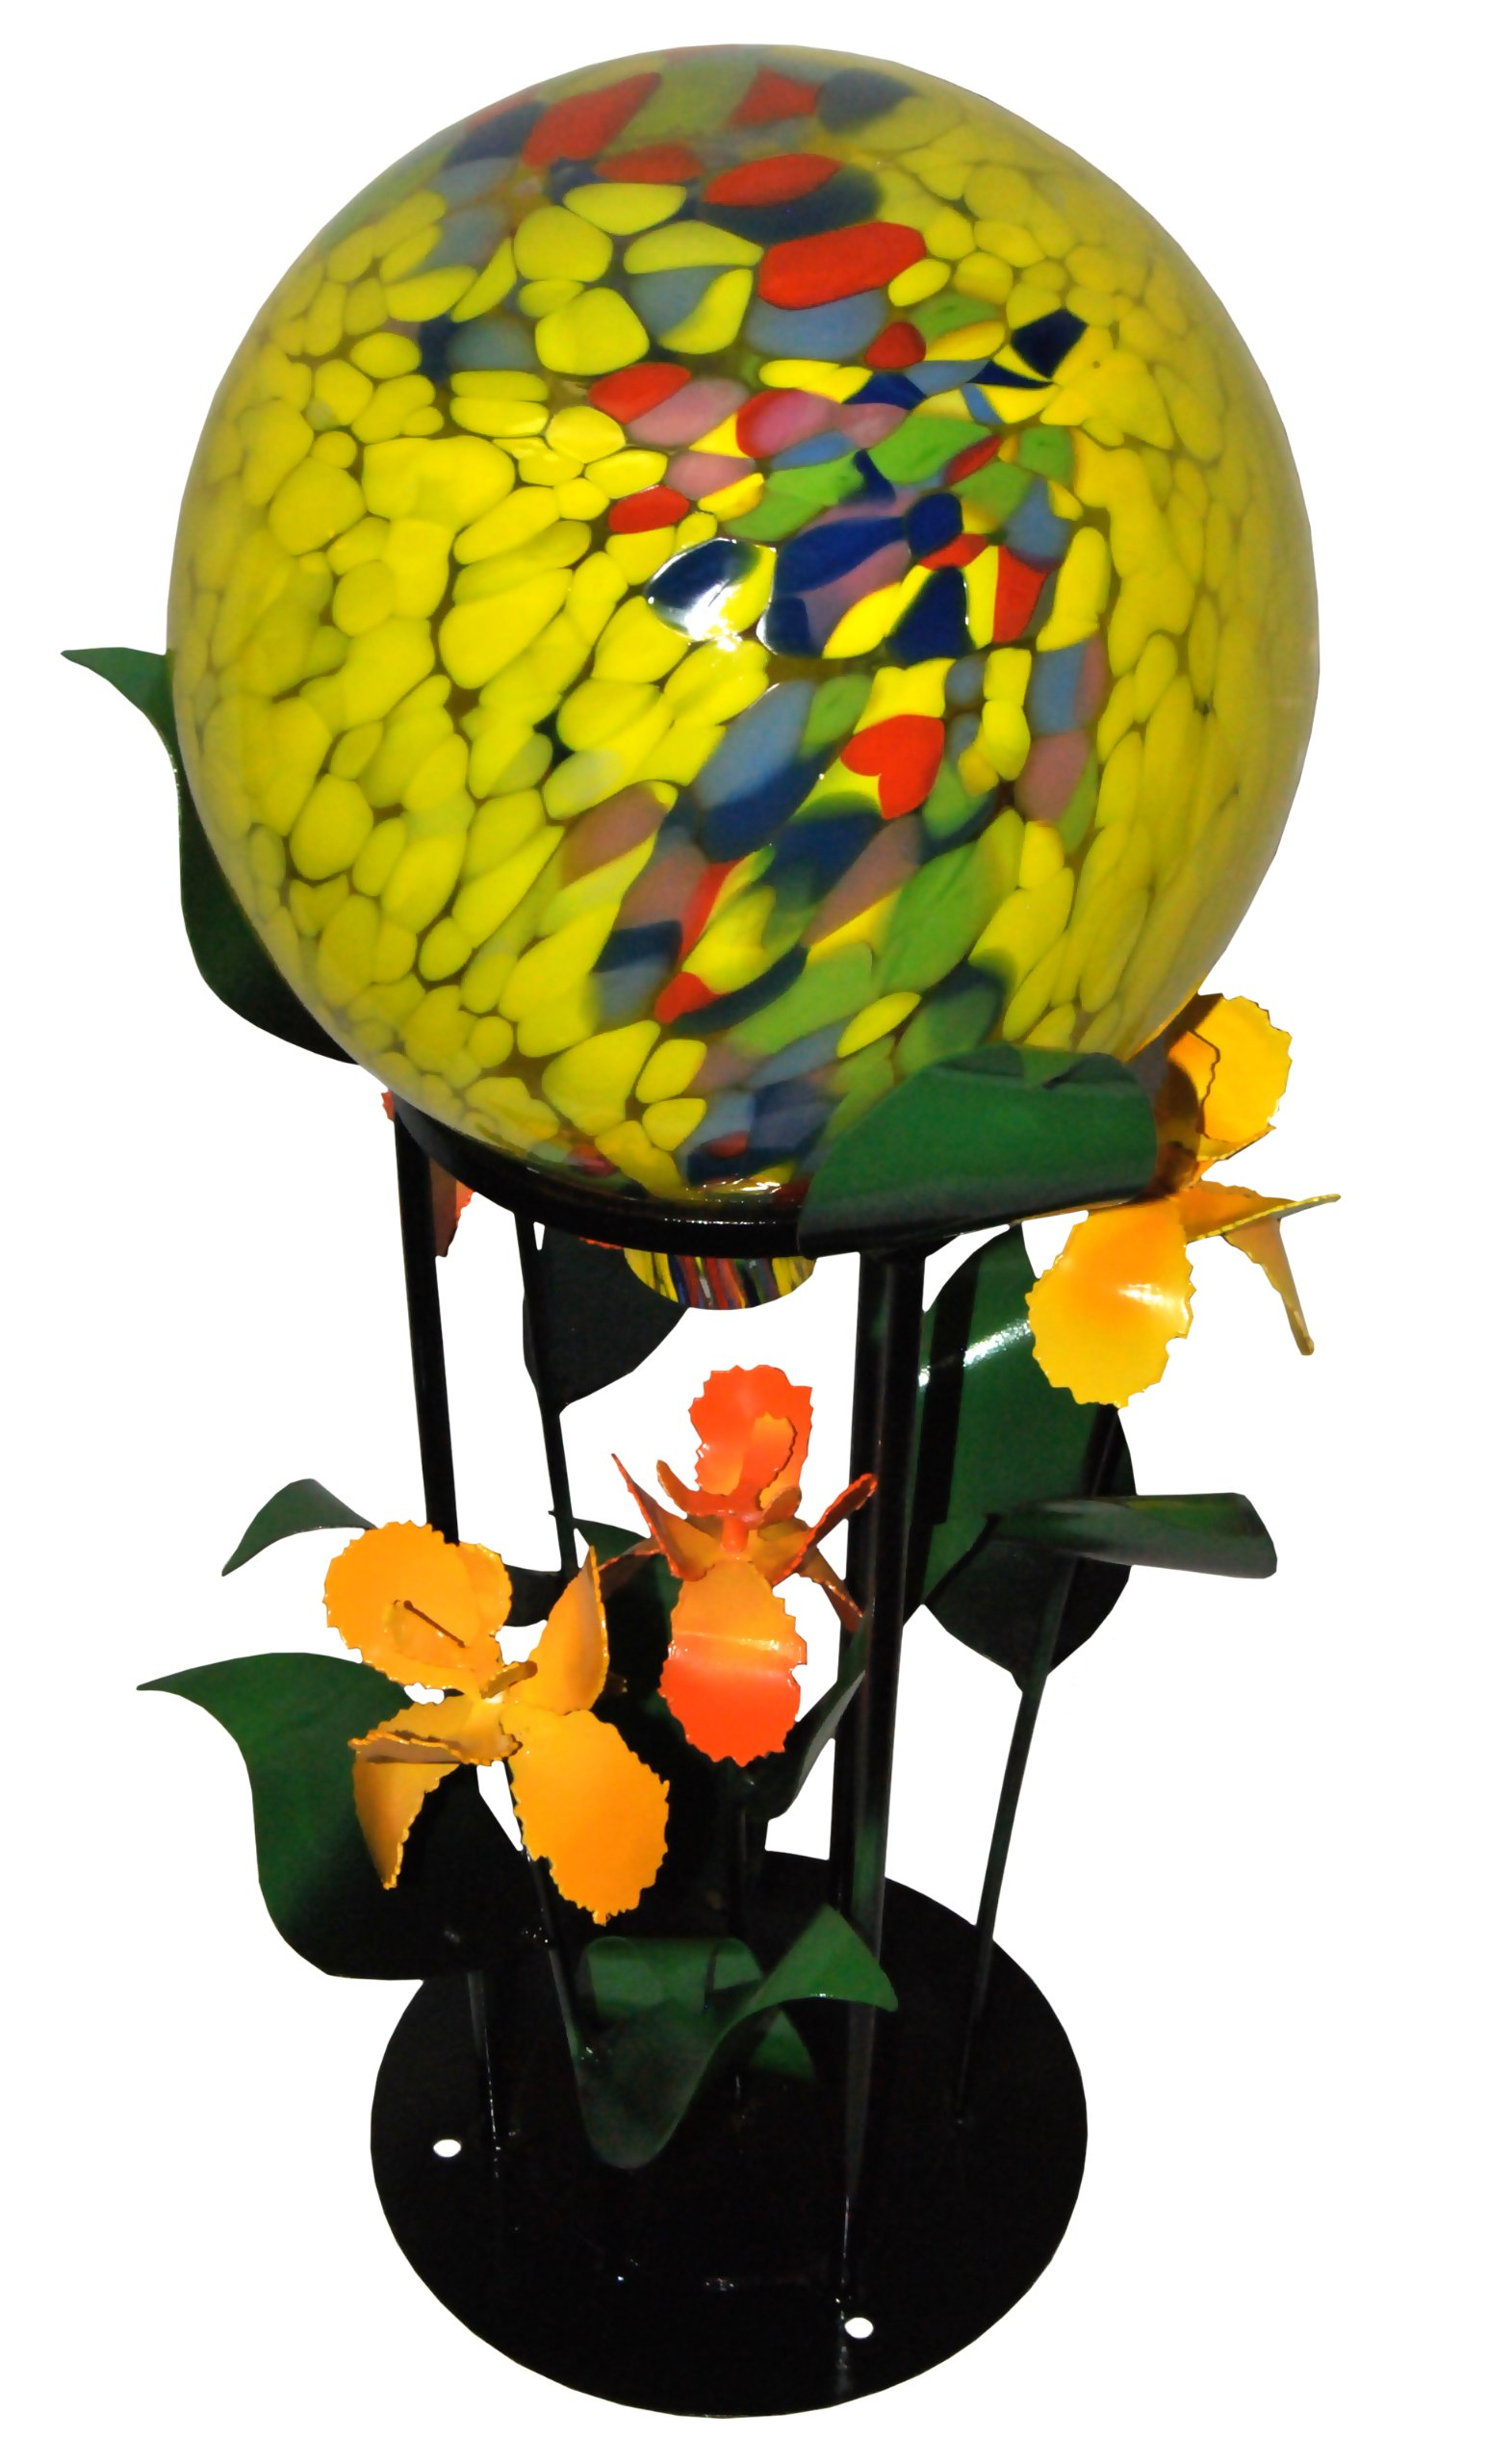 Steven Cooper Metalsmith AGAZBALL-S-Yellow 12-Inch Yellow Gazing Ball on 19-Inch High Base with Yellow Irises by Steven Cooper Metalsmith